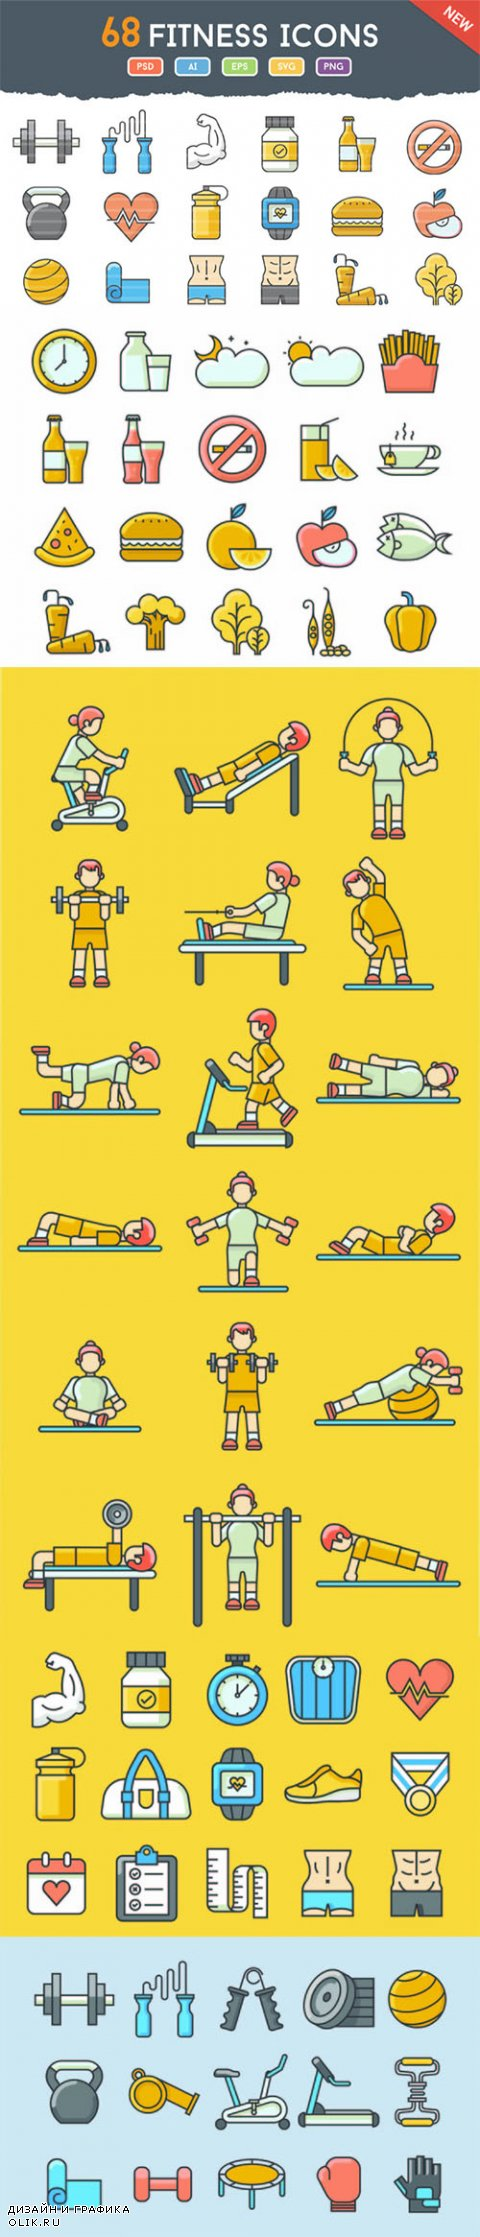 68 Funky Fitness Icons - Creativemarket 670348